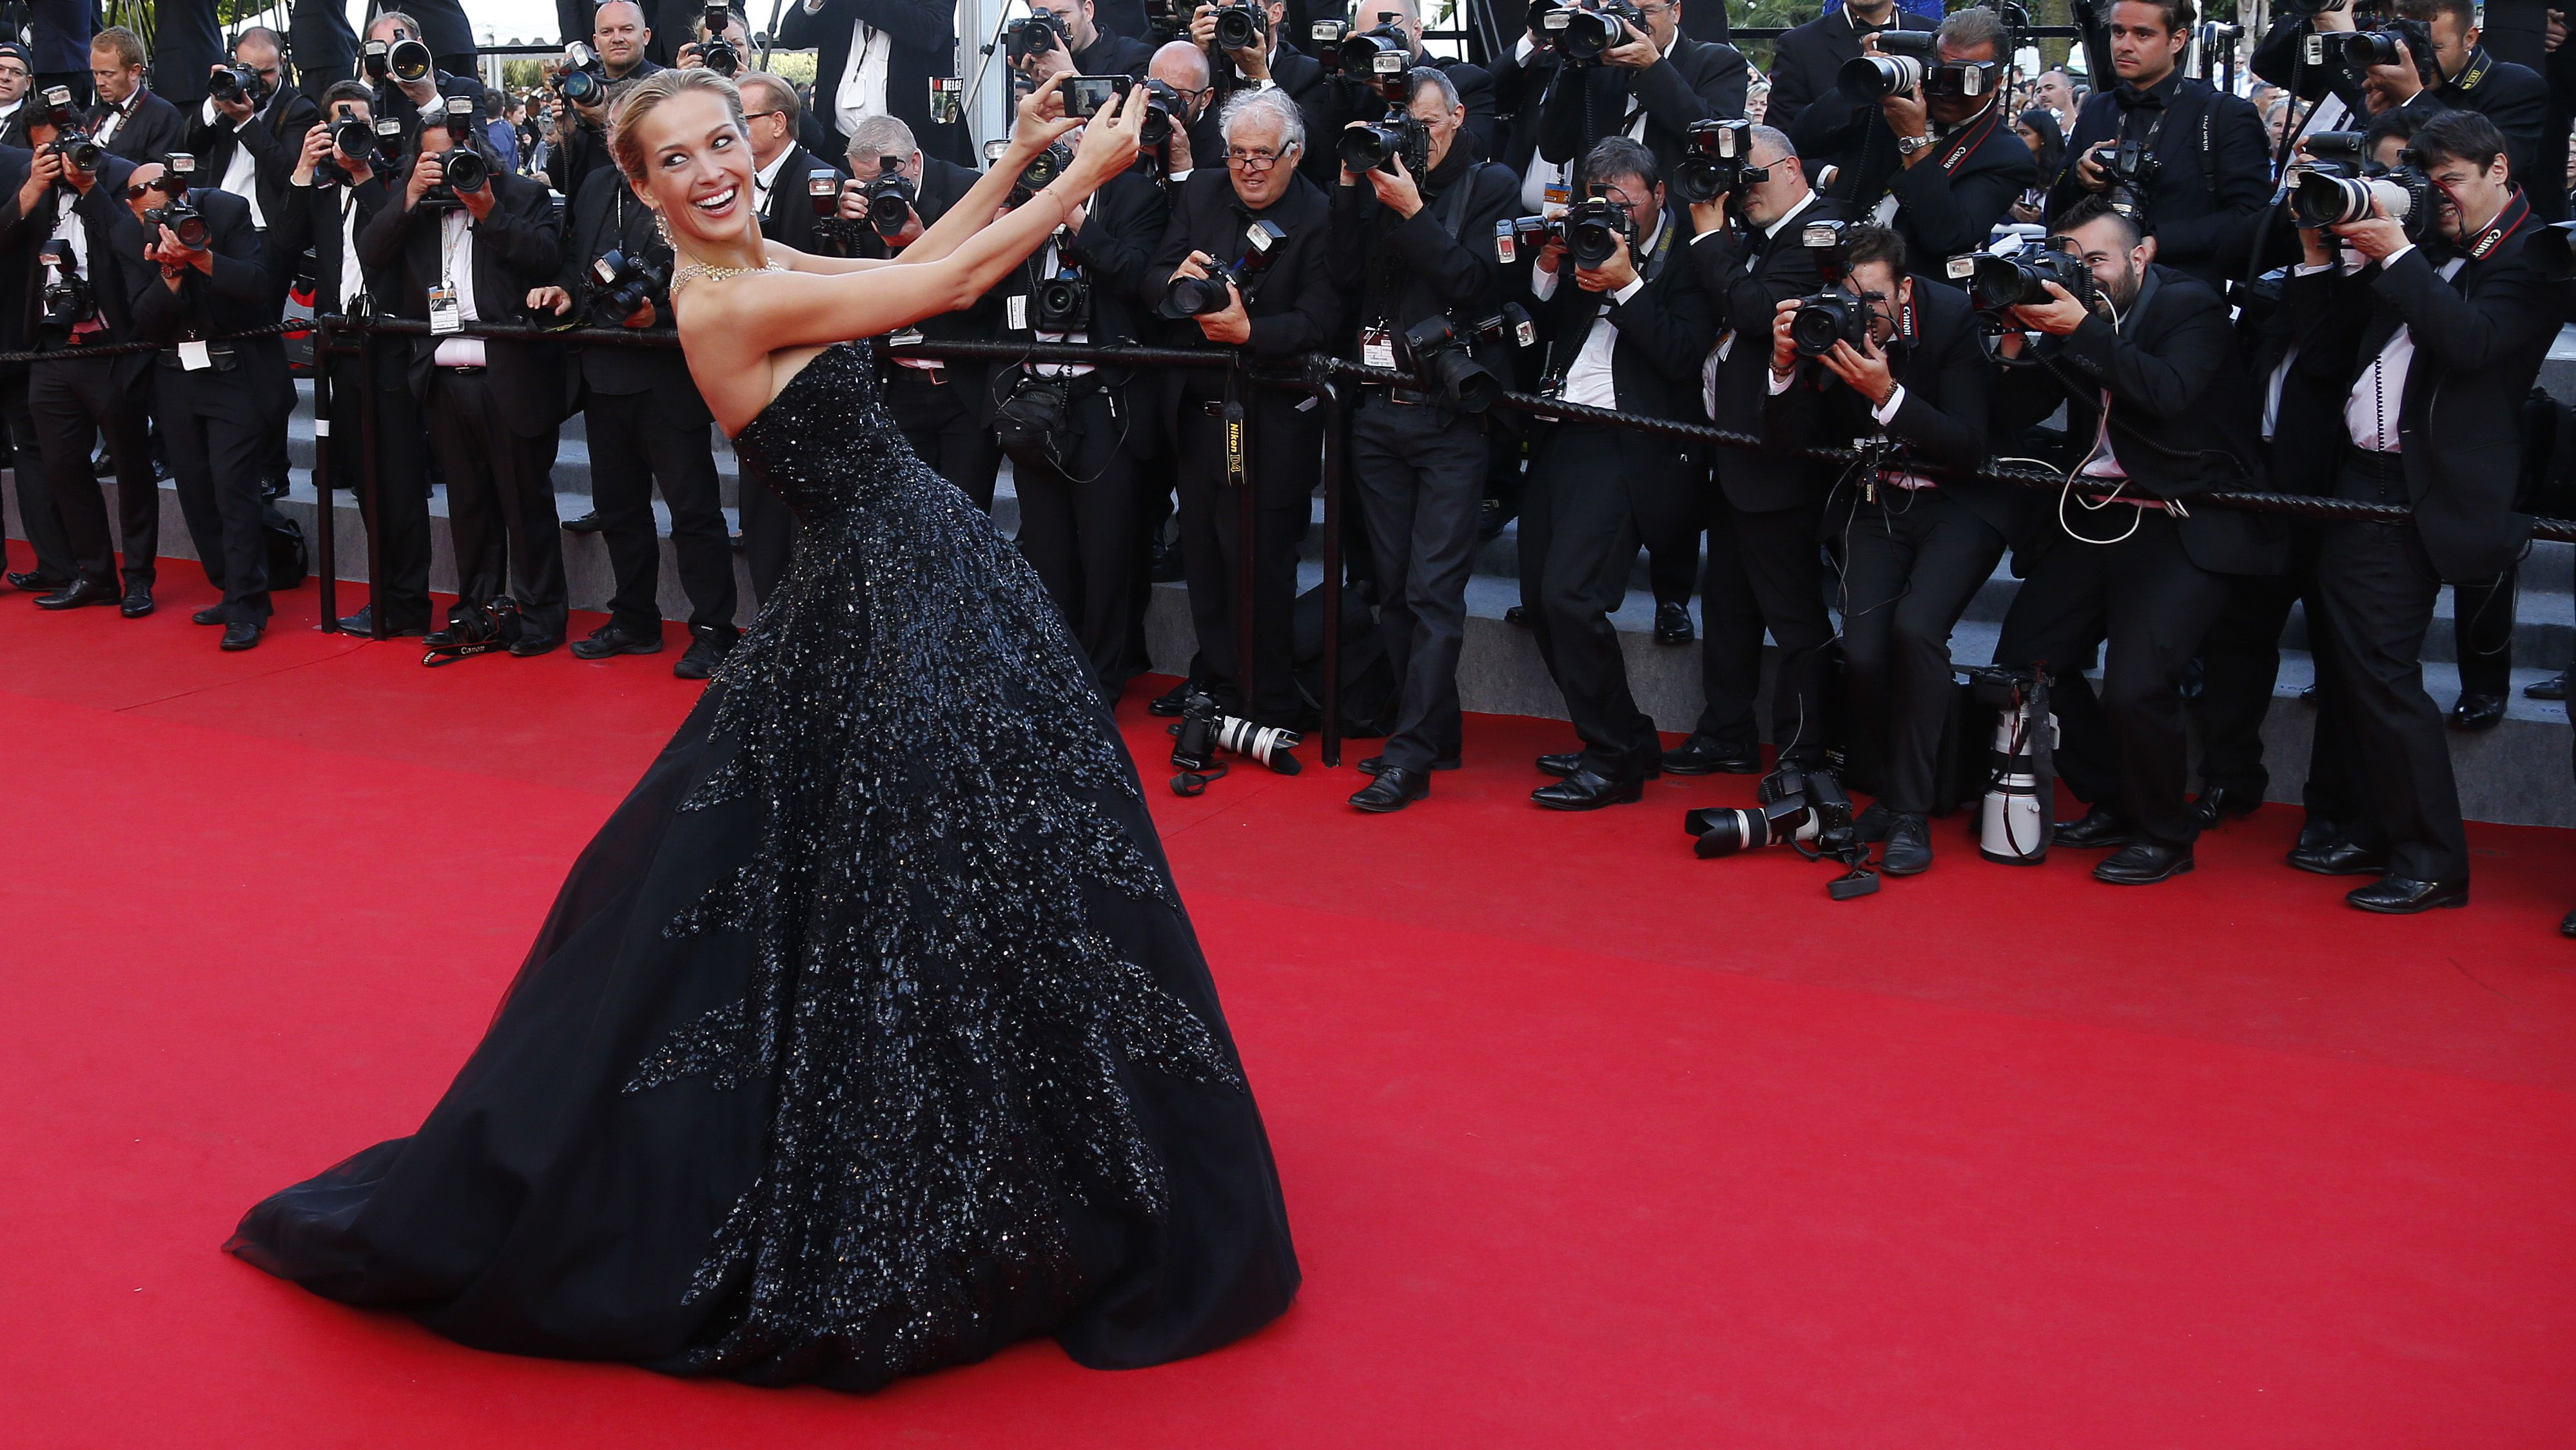 "Model Petra Nemcova takes a selfie with a mobile phone as she poses on the red carpet for the screening of the film ""Deux jours, une nuit"" (Two Days, One Night) in competition at the 67th Cannes Film Festival in Cannes May 20, 2014.          REUTERS/Yves Herman (FRANCE  - Tags: ENTERTAINMENT)   - RTR3Q29G"